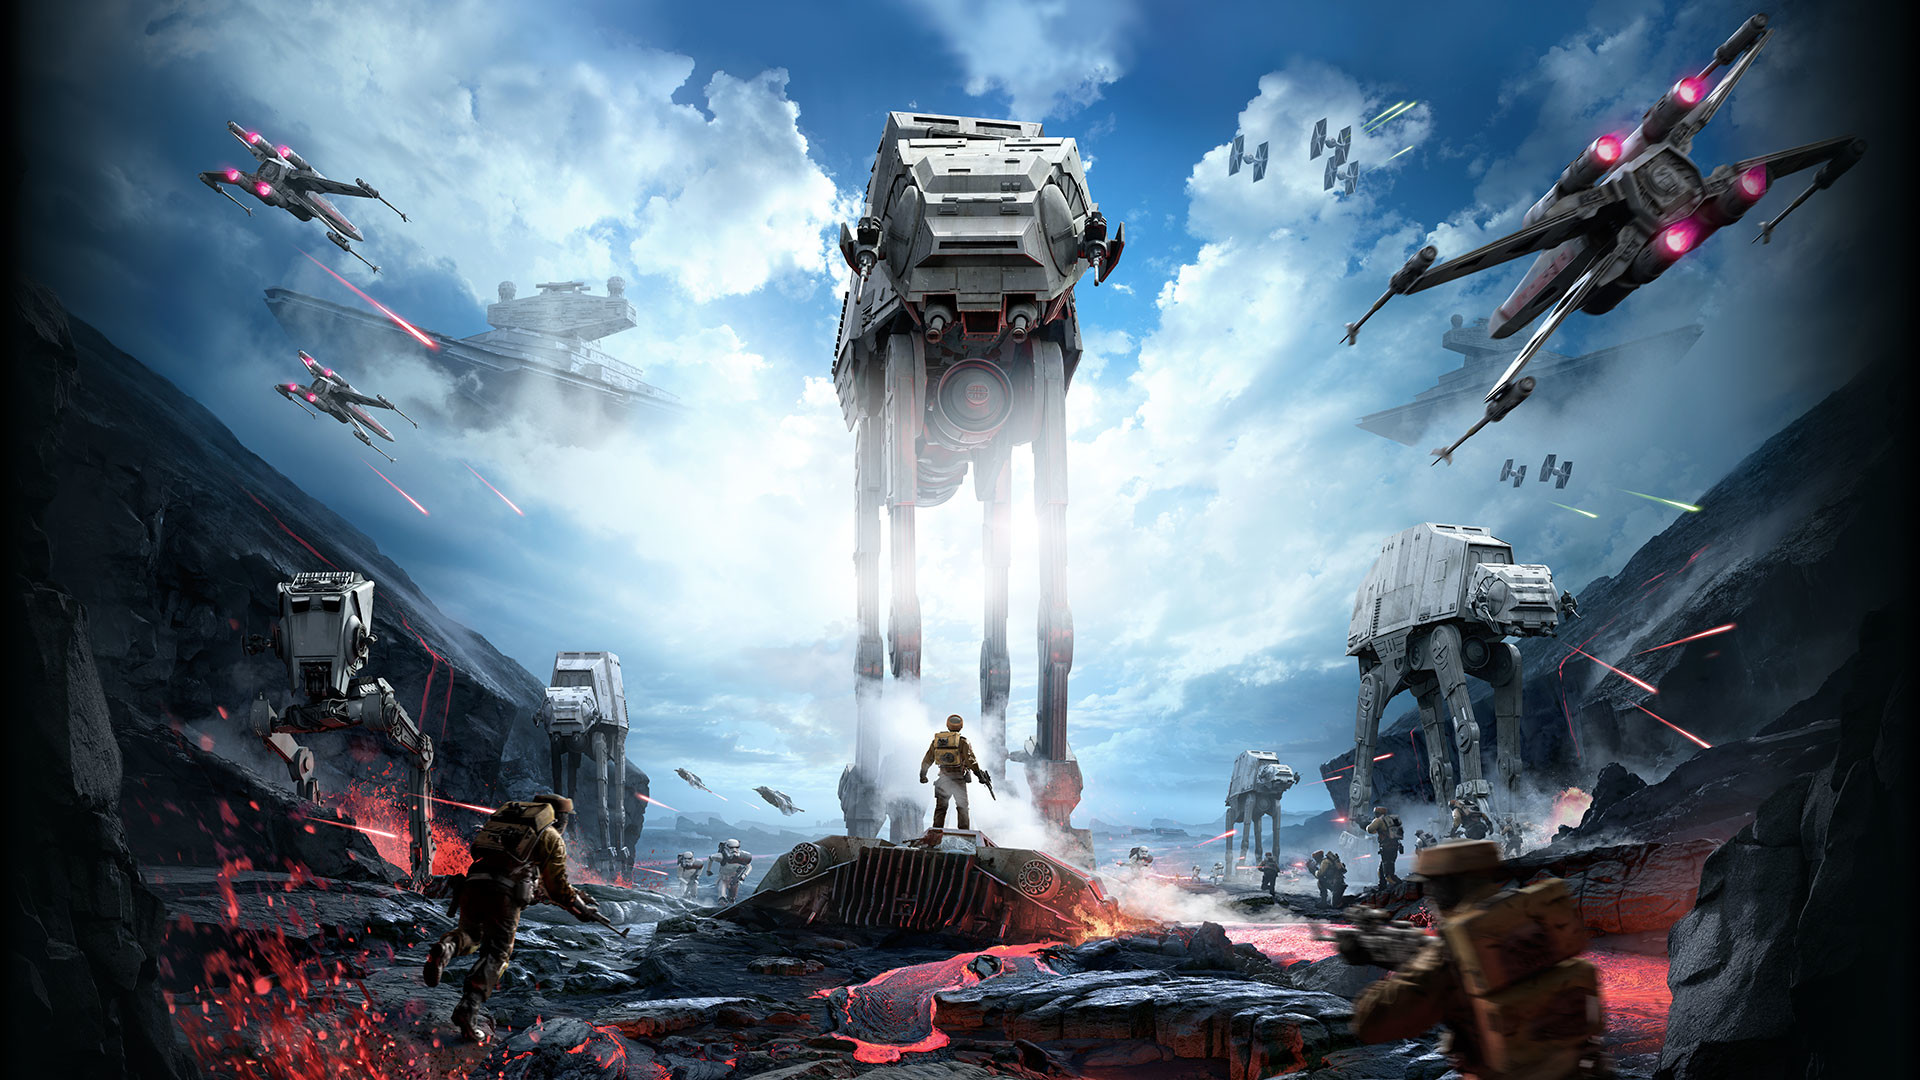 Star Wars Backgrounds 1920x1080 Posted By Ryan Anderson